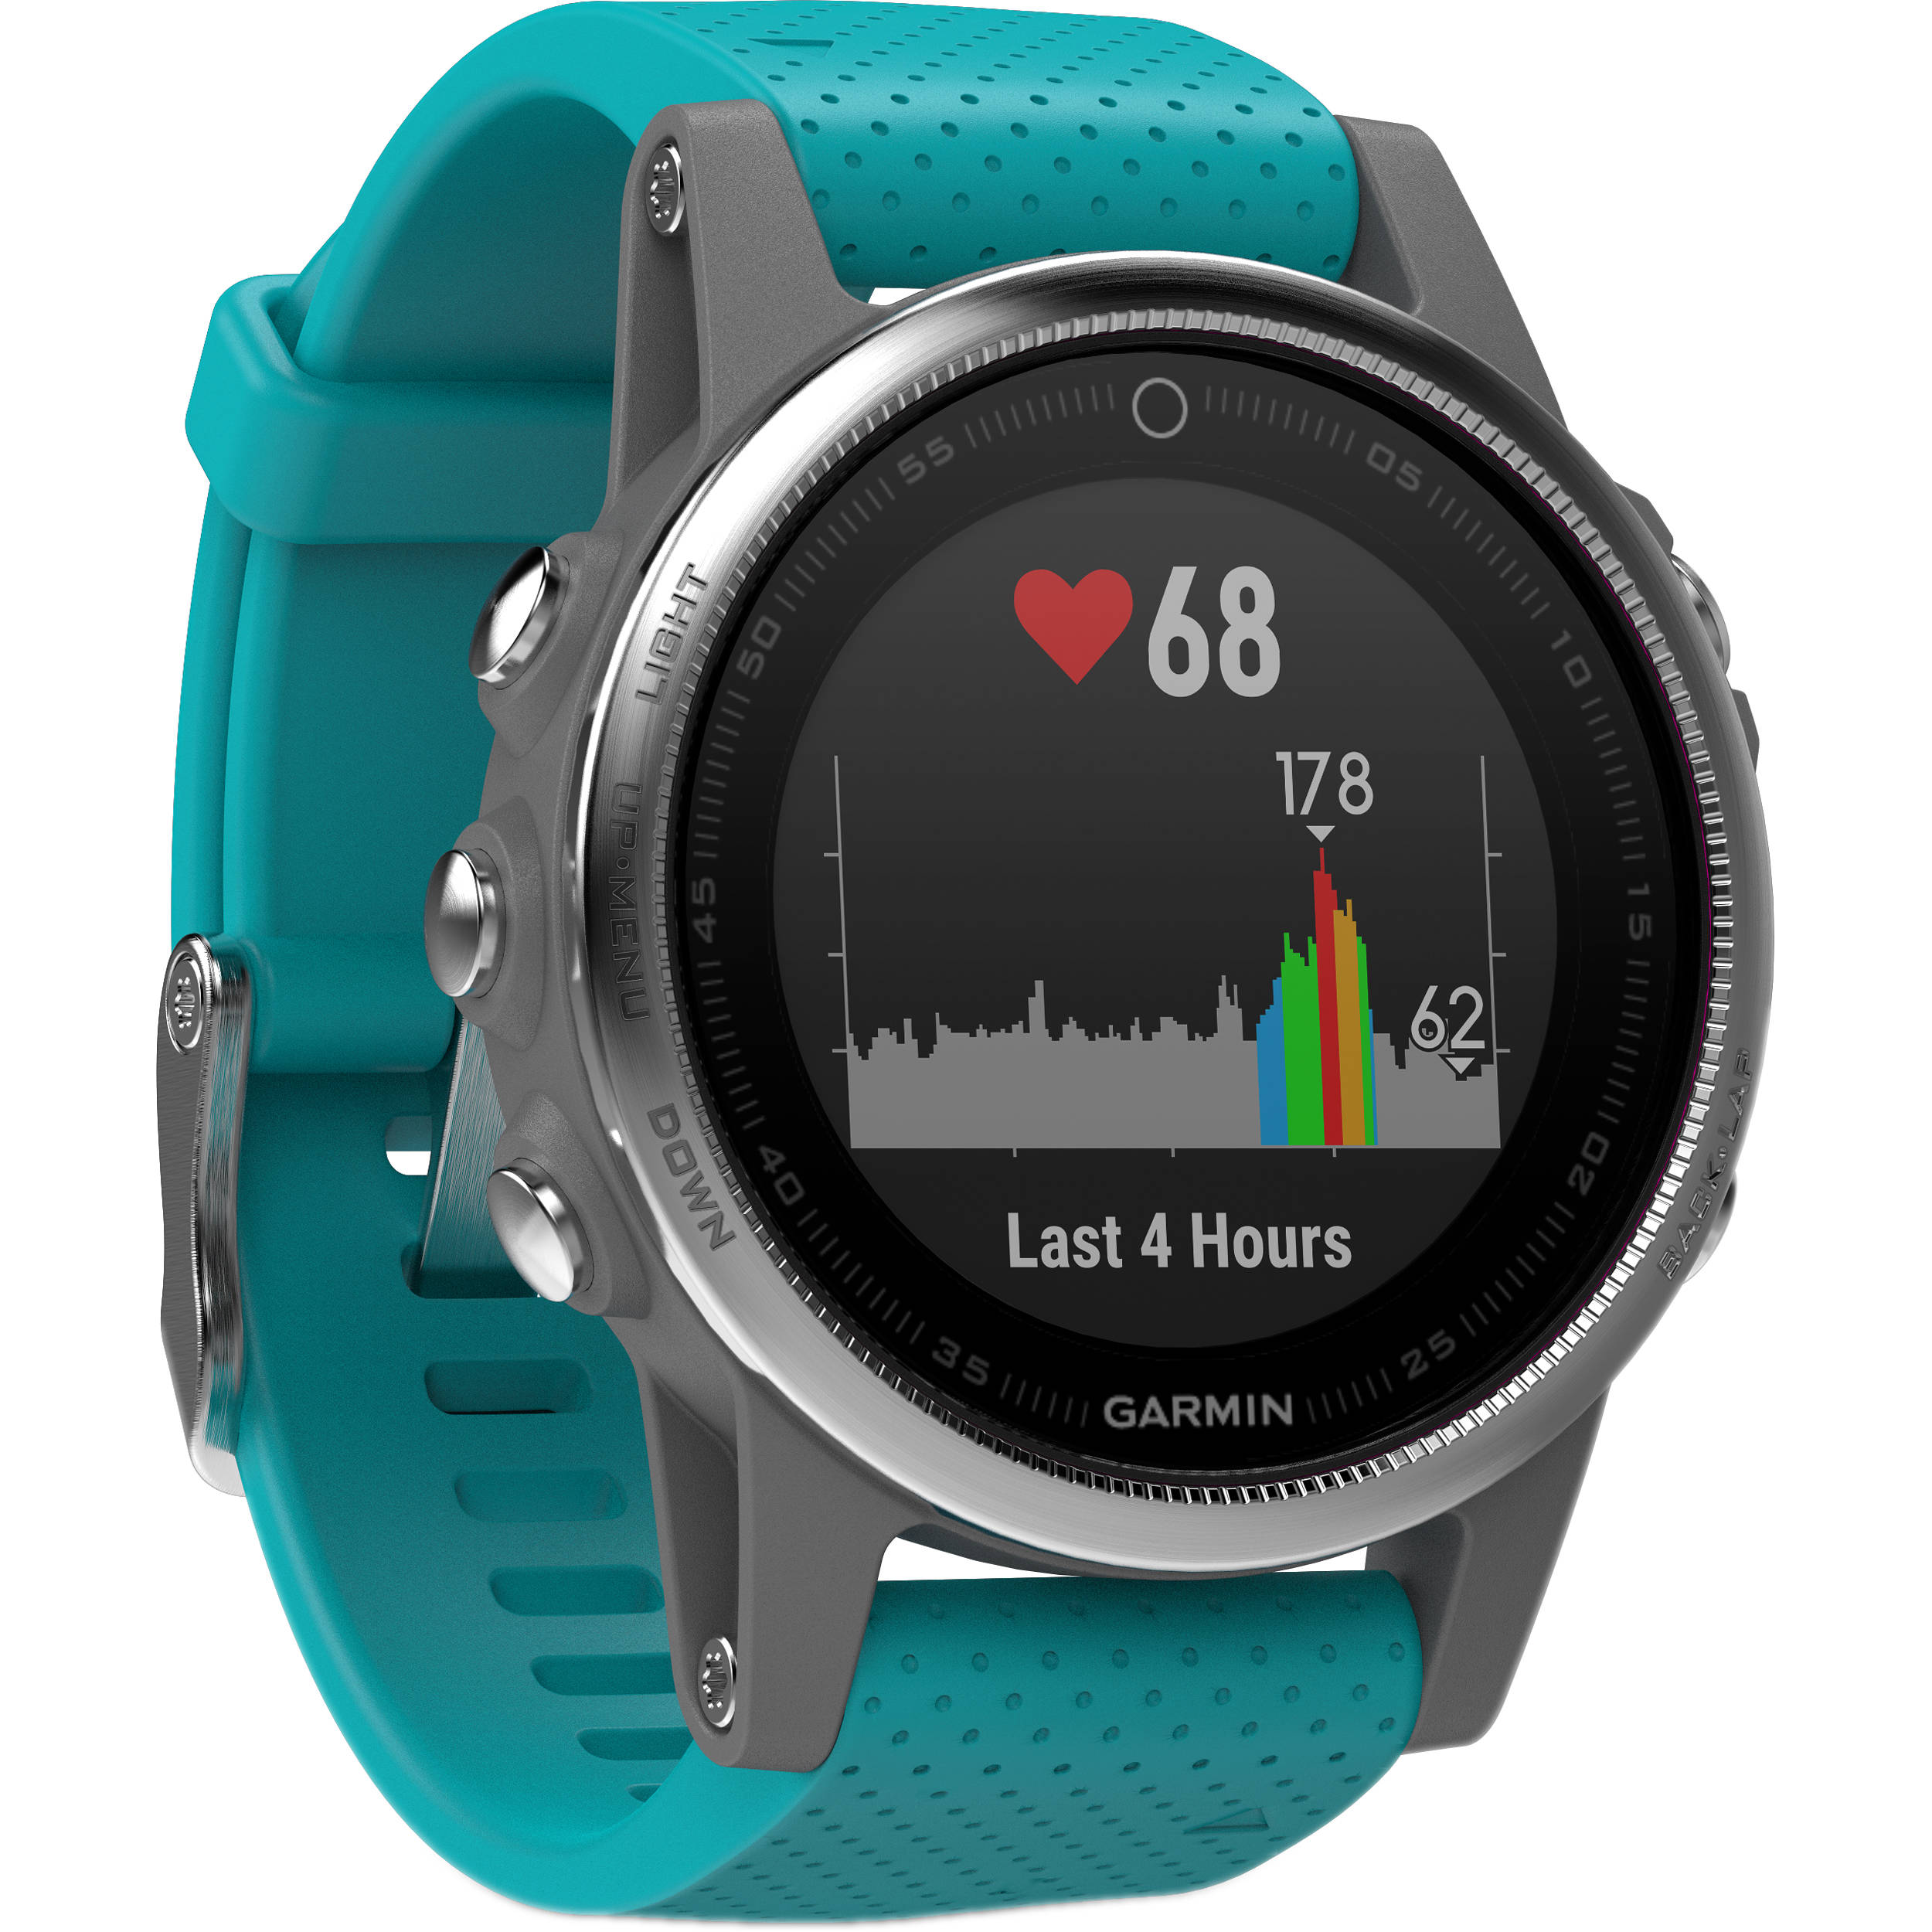 watches granite garmin hr products fenix gps blue r in silver multisport watch sportique